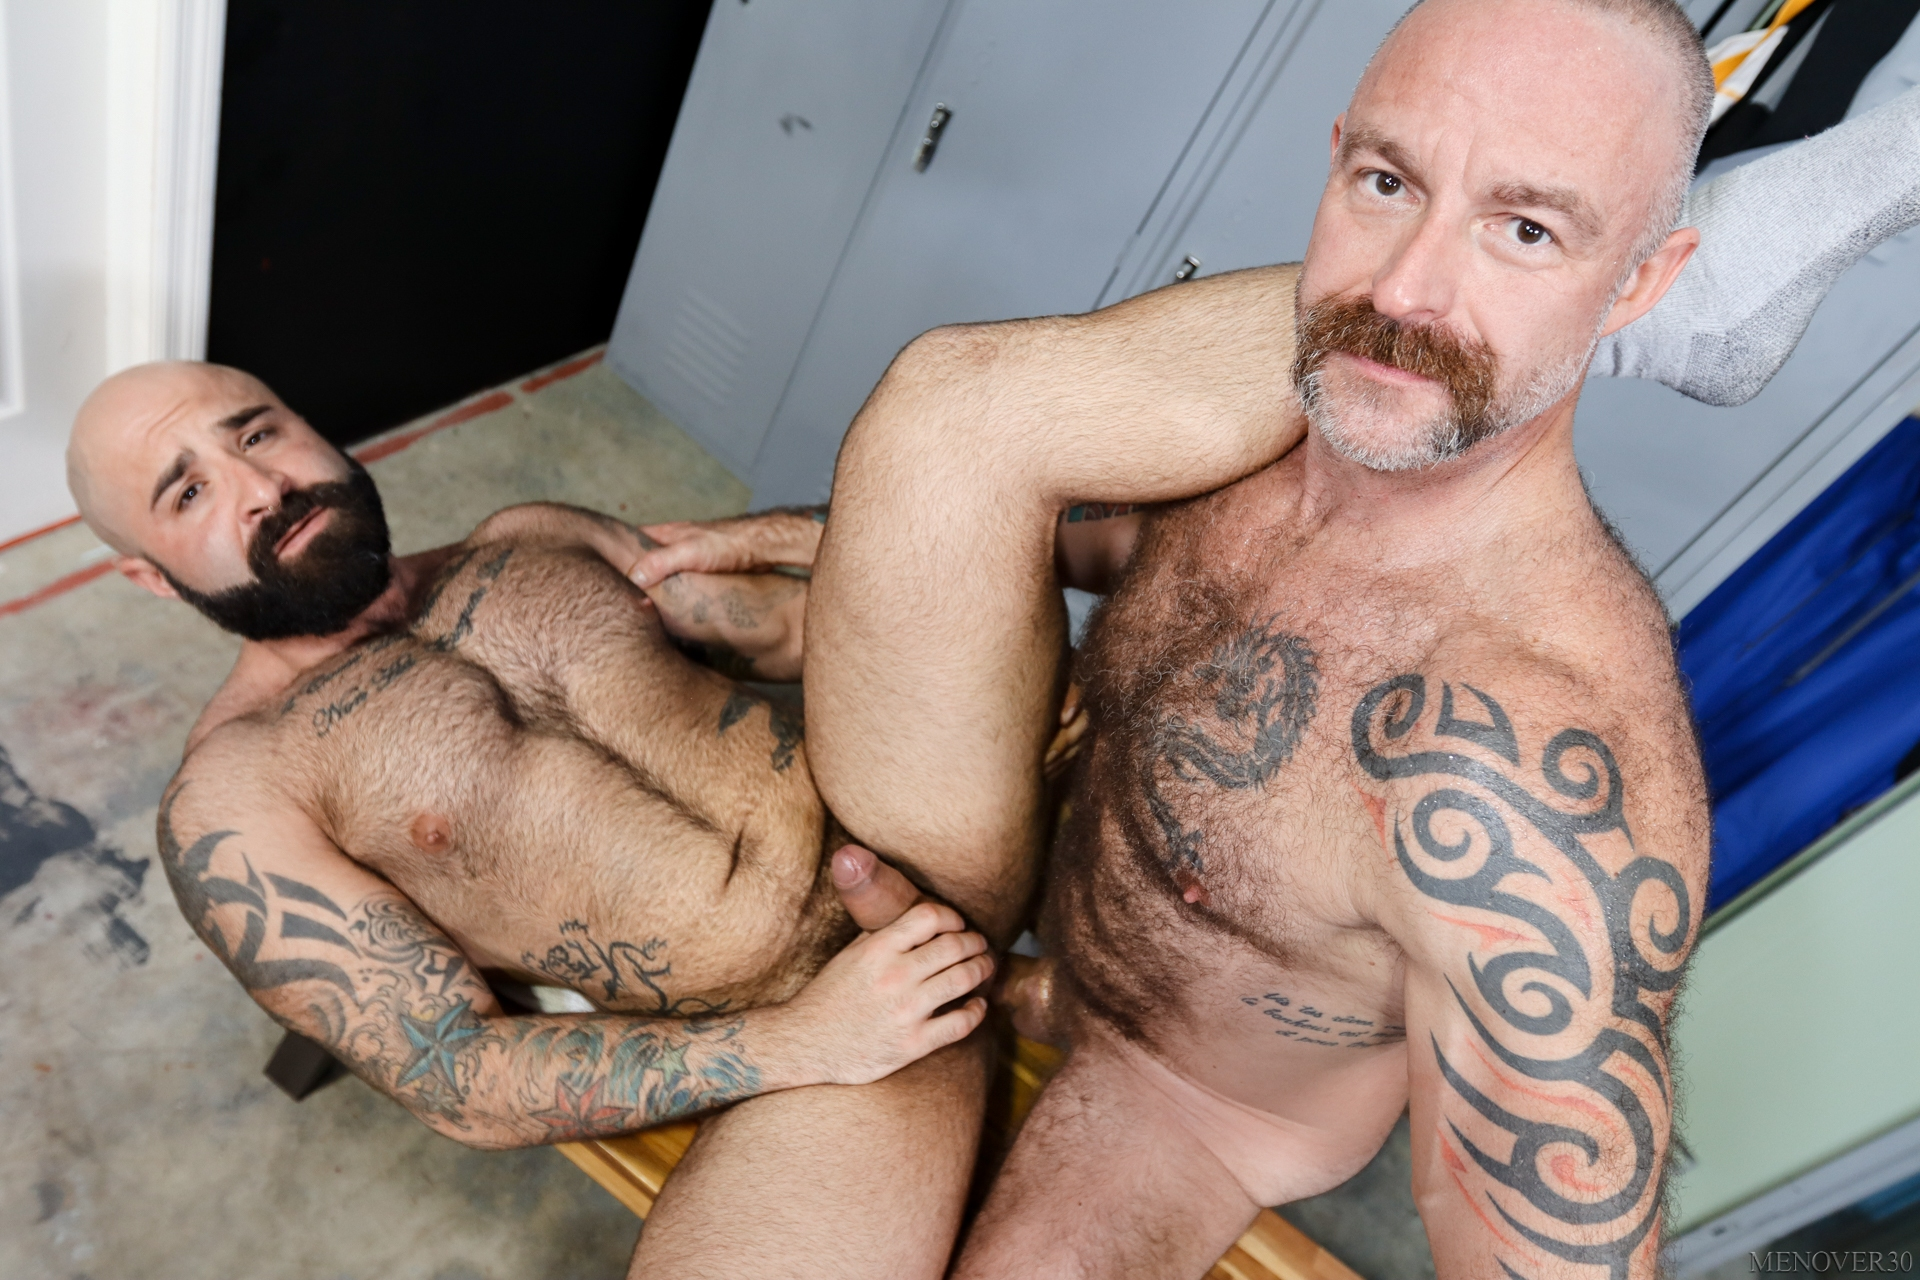 Atlas Grant And Musclebear Montreal Have Locker-Room Fun For Men Over 30